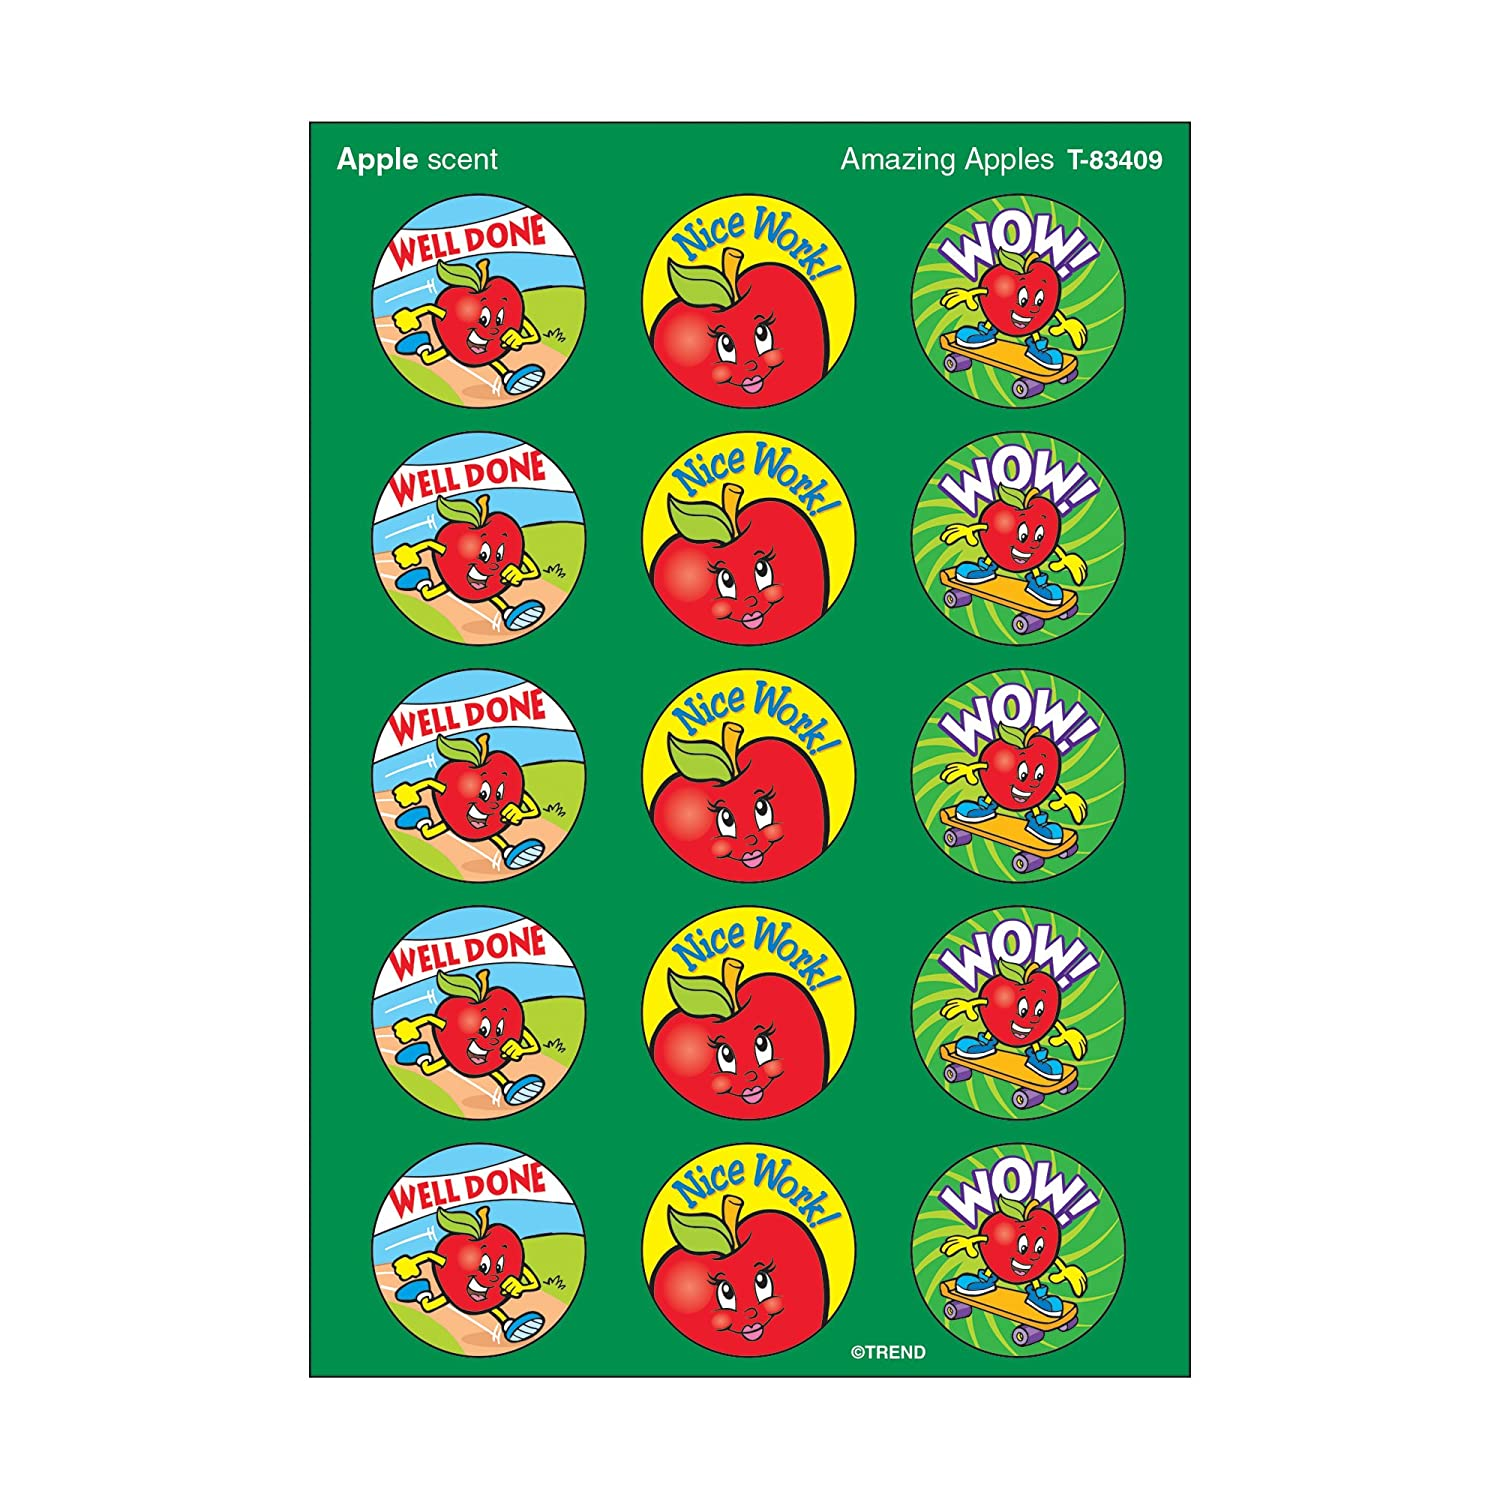 Trend Amazing Apples Smelly Stickers (Apple Scented) by Trend TREND ENTERPRISES INC. T-83409